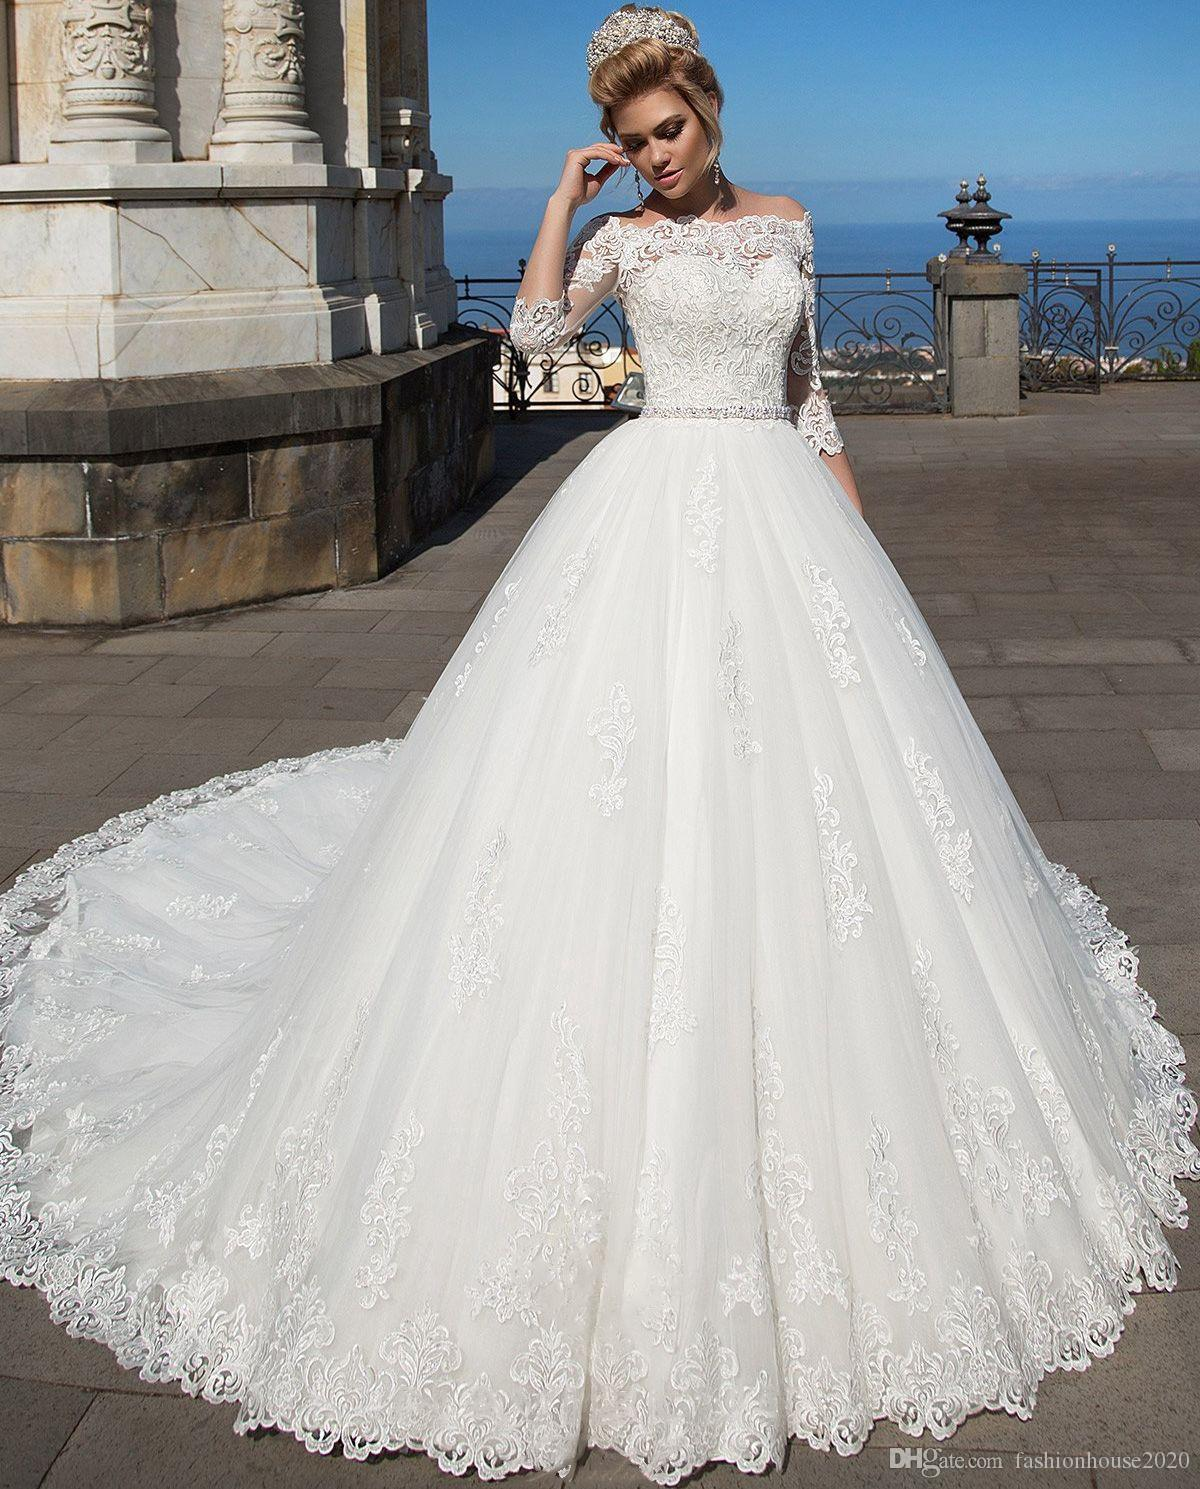 Cheap Wedding Dresses To Rent: 2020 Cheap Elegant Ball Gown Wedding Dresses Off Shoulder